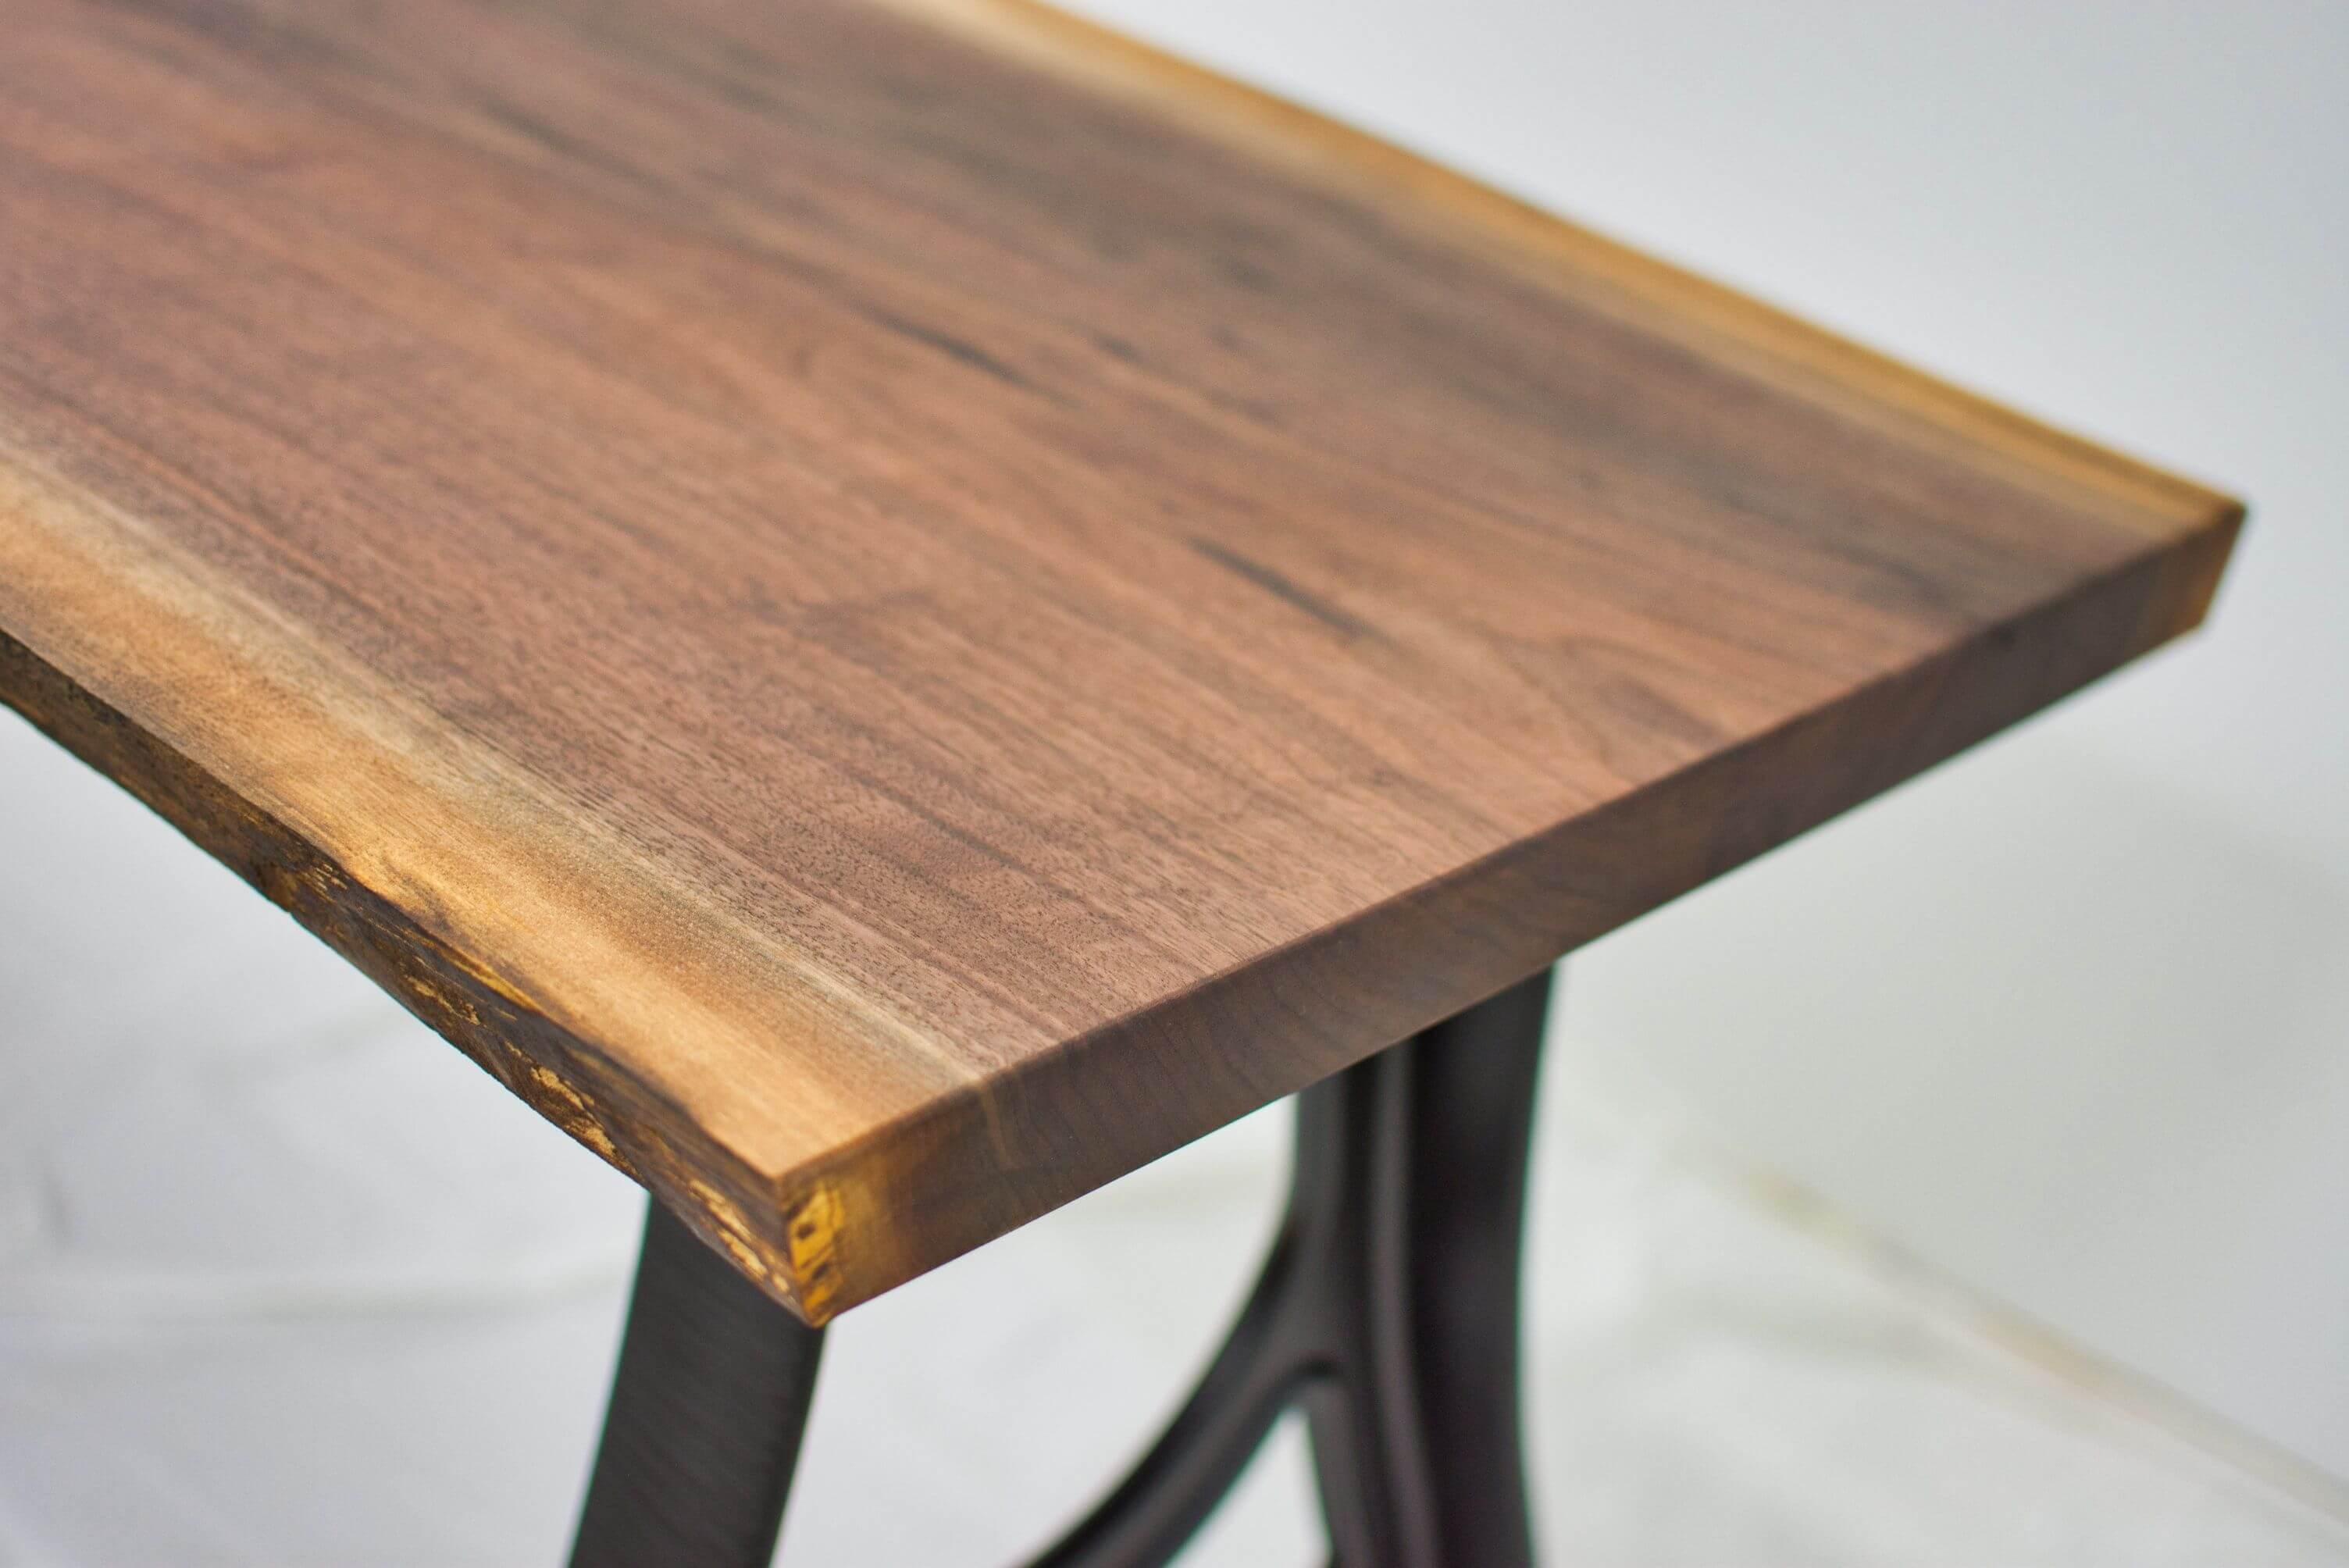 Beautiful live edge on this walnut desk finished with a hardwax oil from Rubio Monocoat.